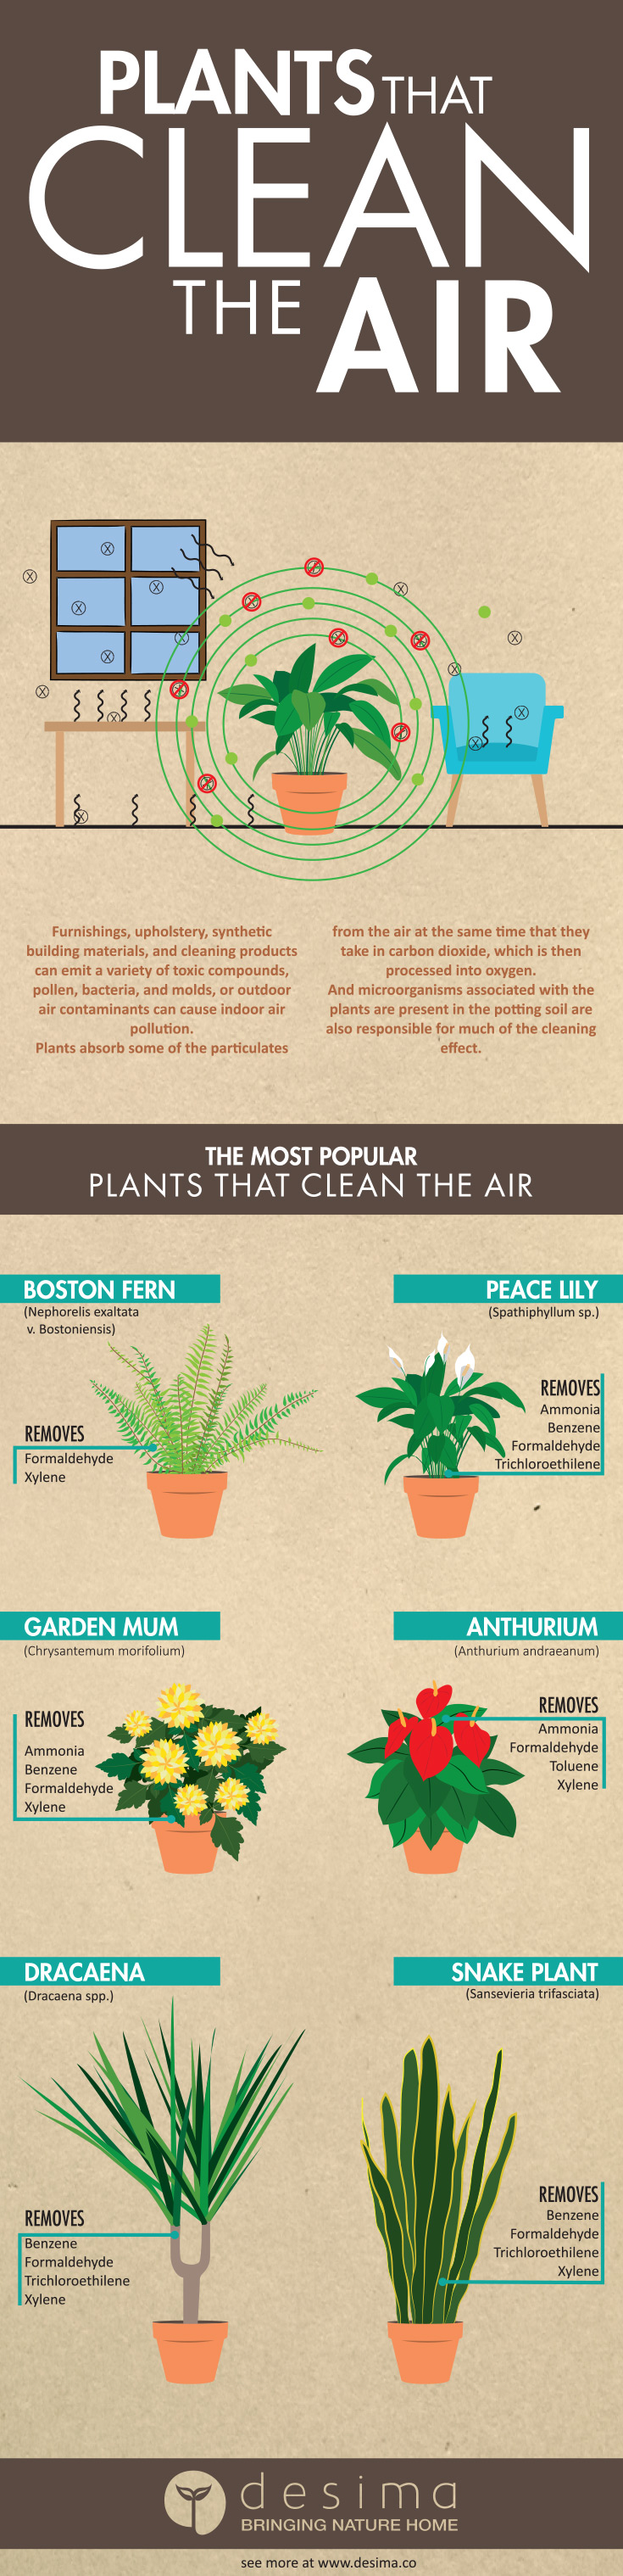 Plants that Clean the Air